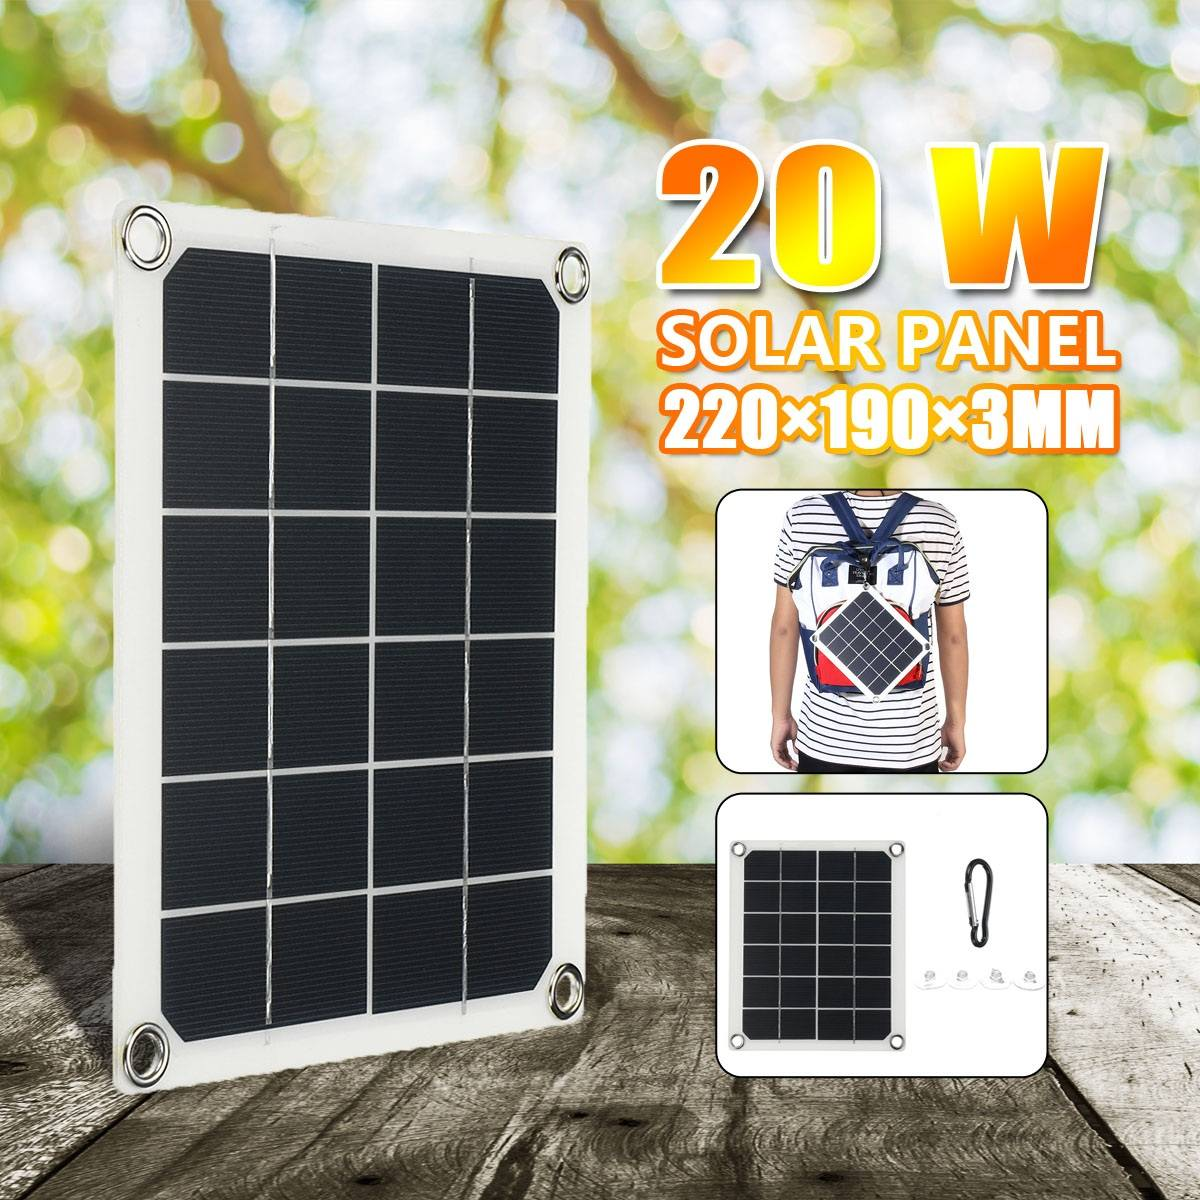 20W DC5V Solar Panel Single Crystal Solar Panel Charging Automotive Flexible Energy Saving Phone Battery Charger 5V USB 2.0 Port image